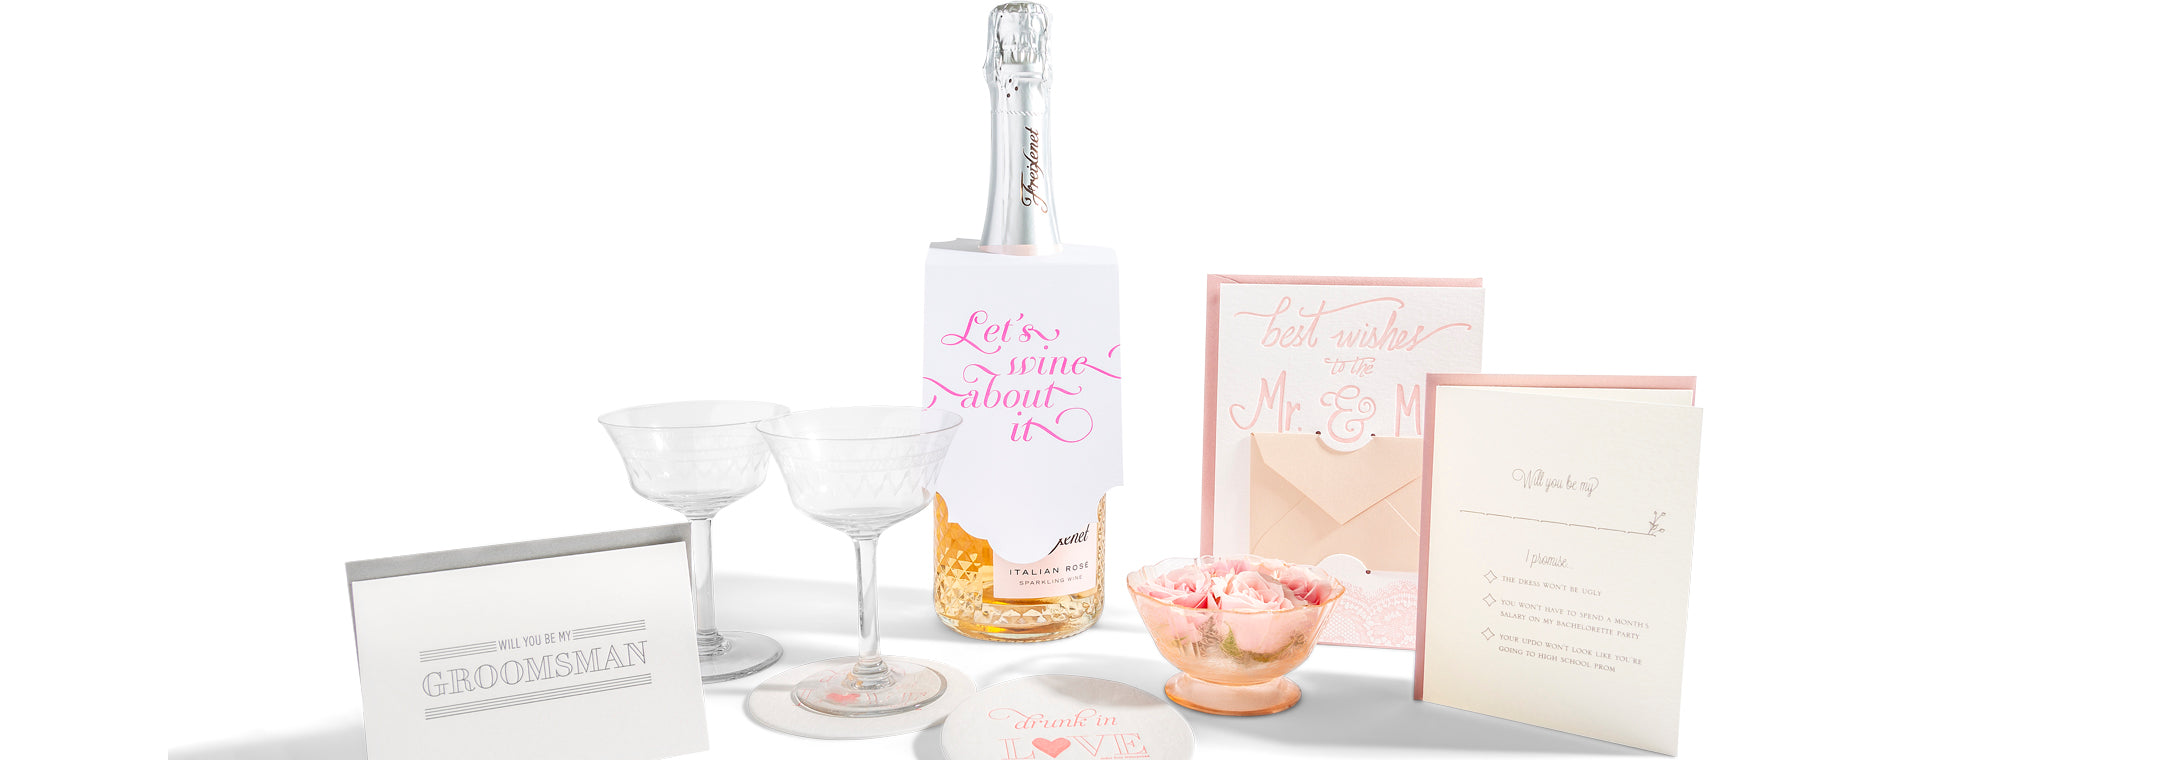 Gift Guides for the Bride & Groom